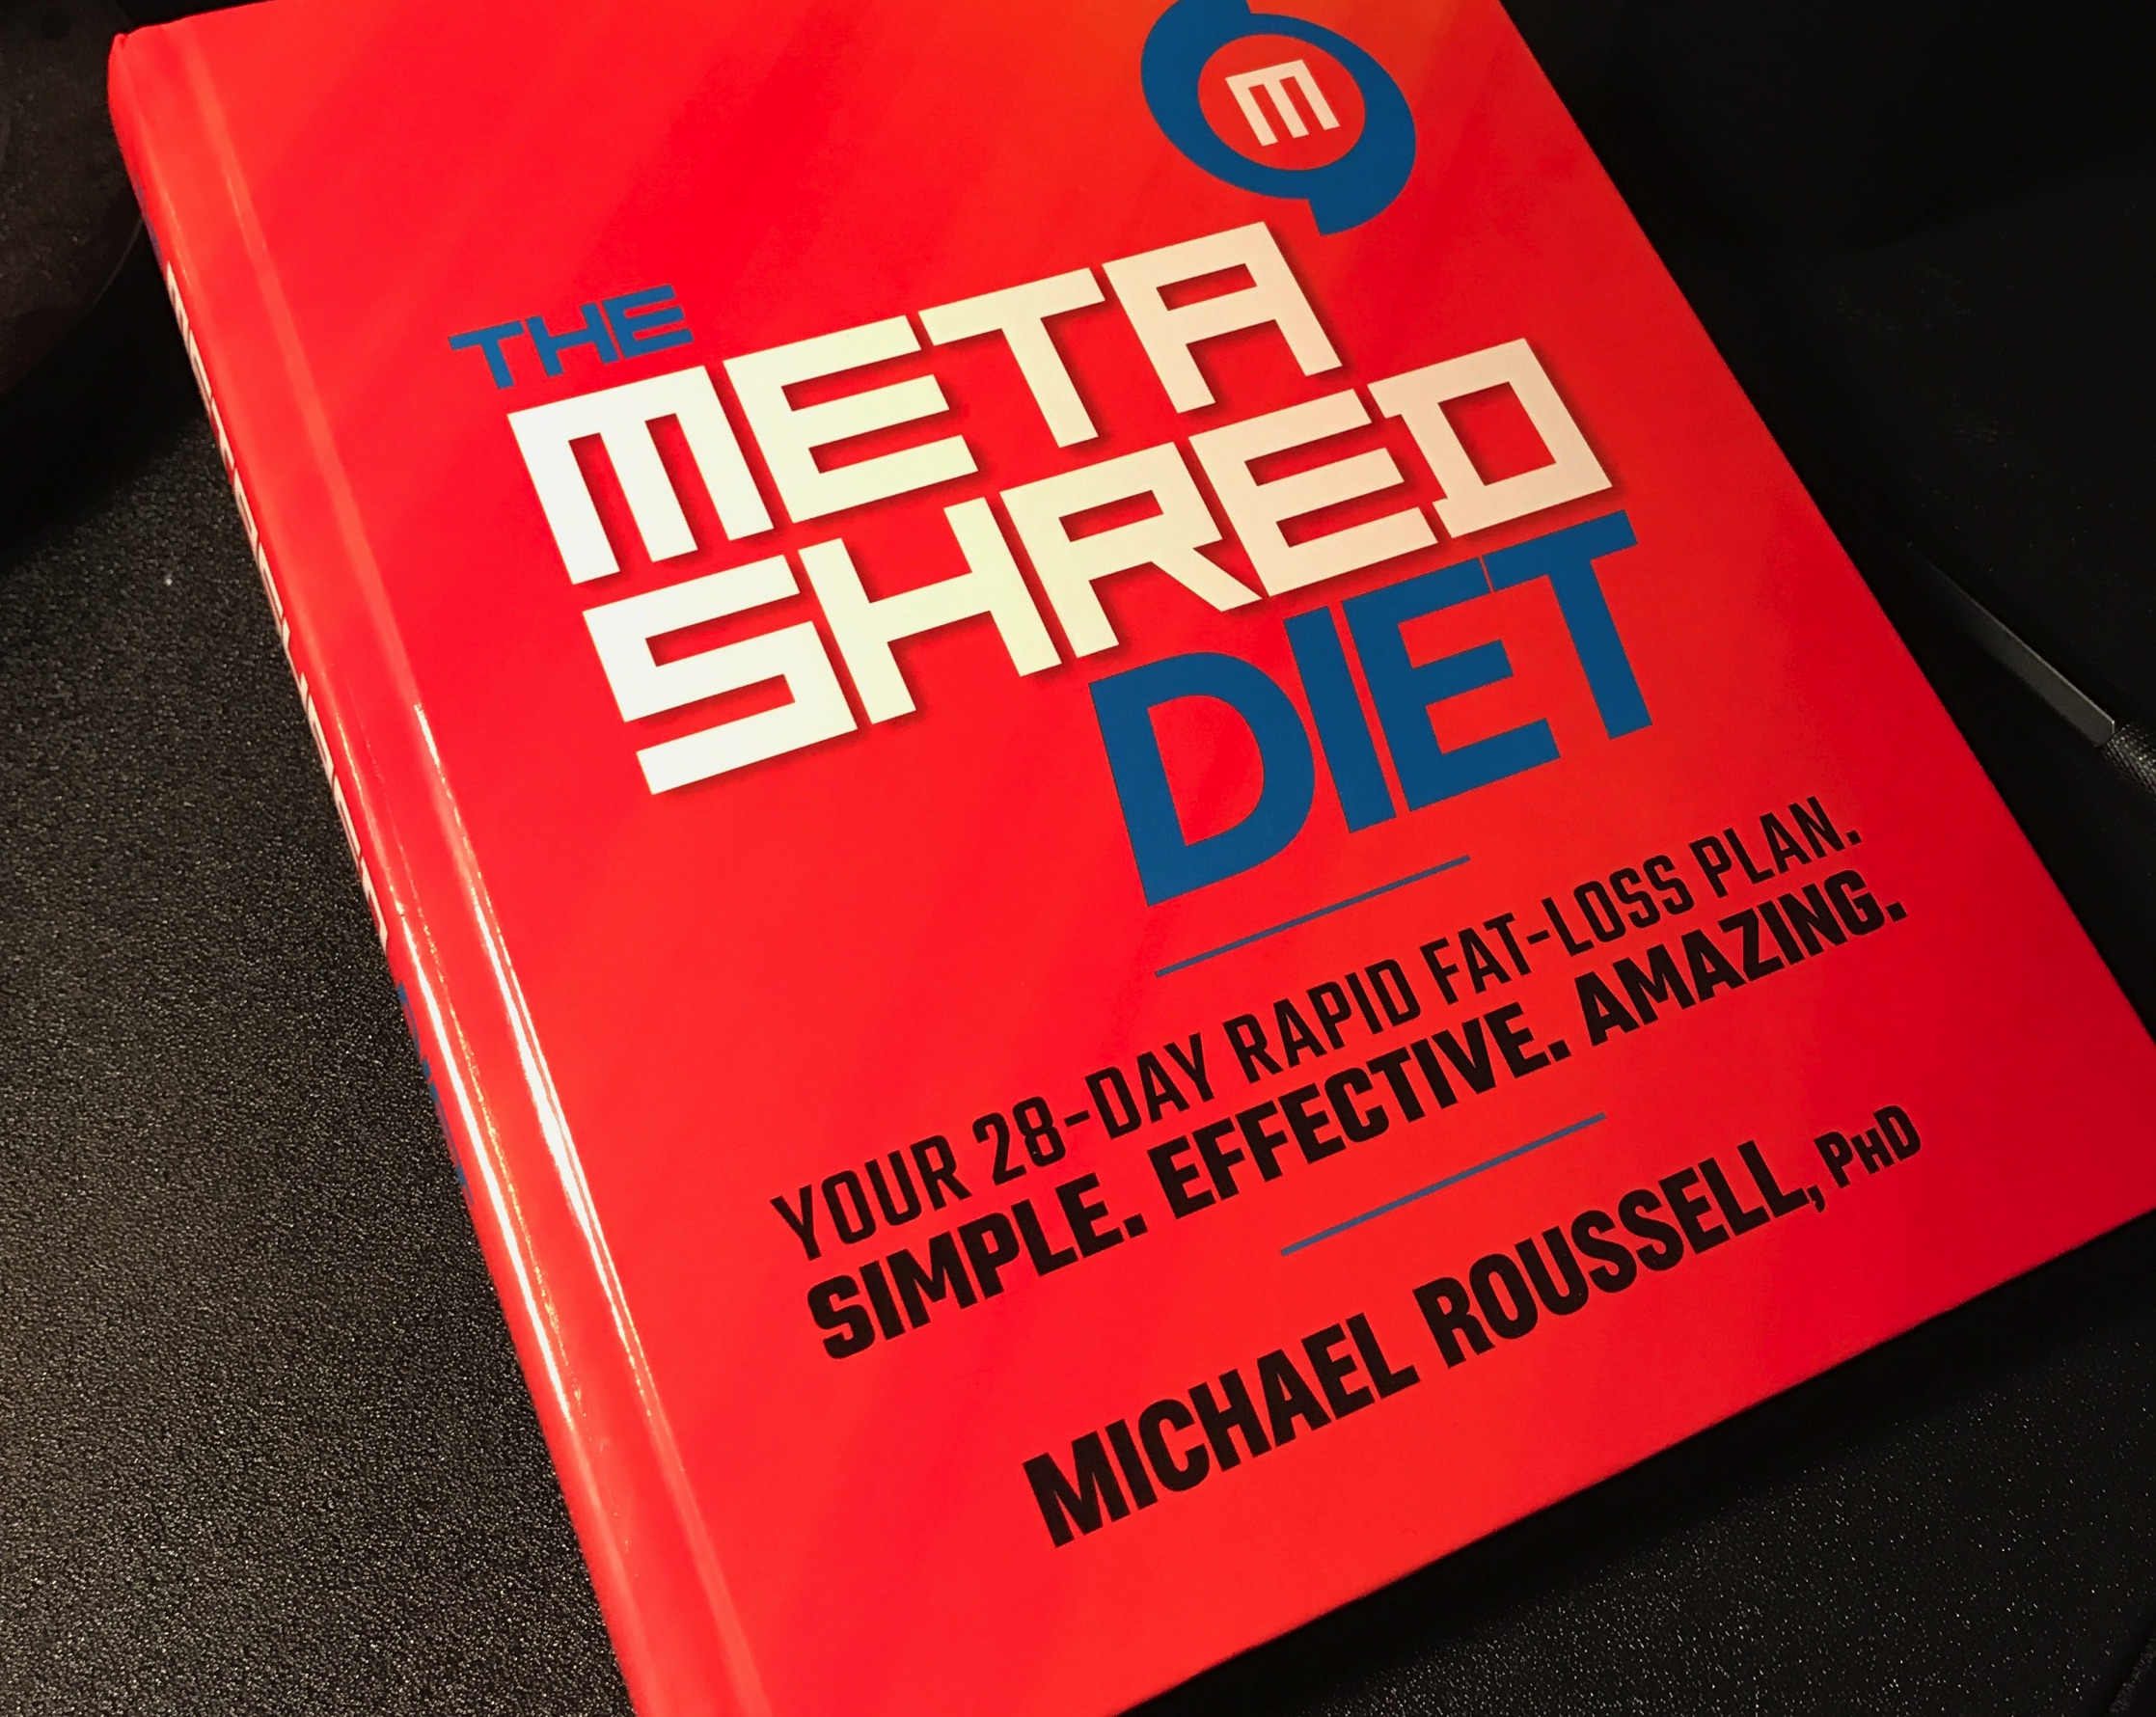 My Incredibly Biased Review of The MetaShred Diet by Michael